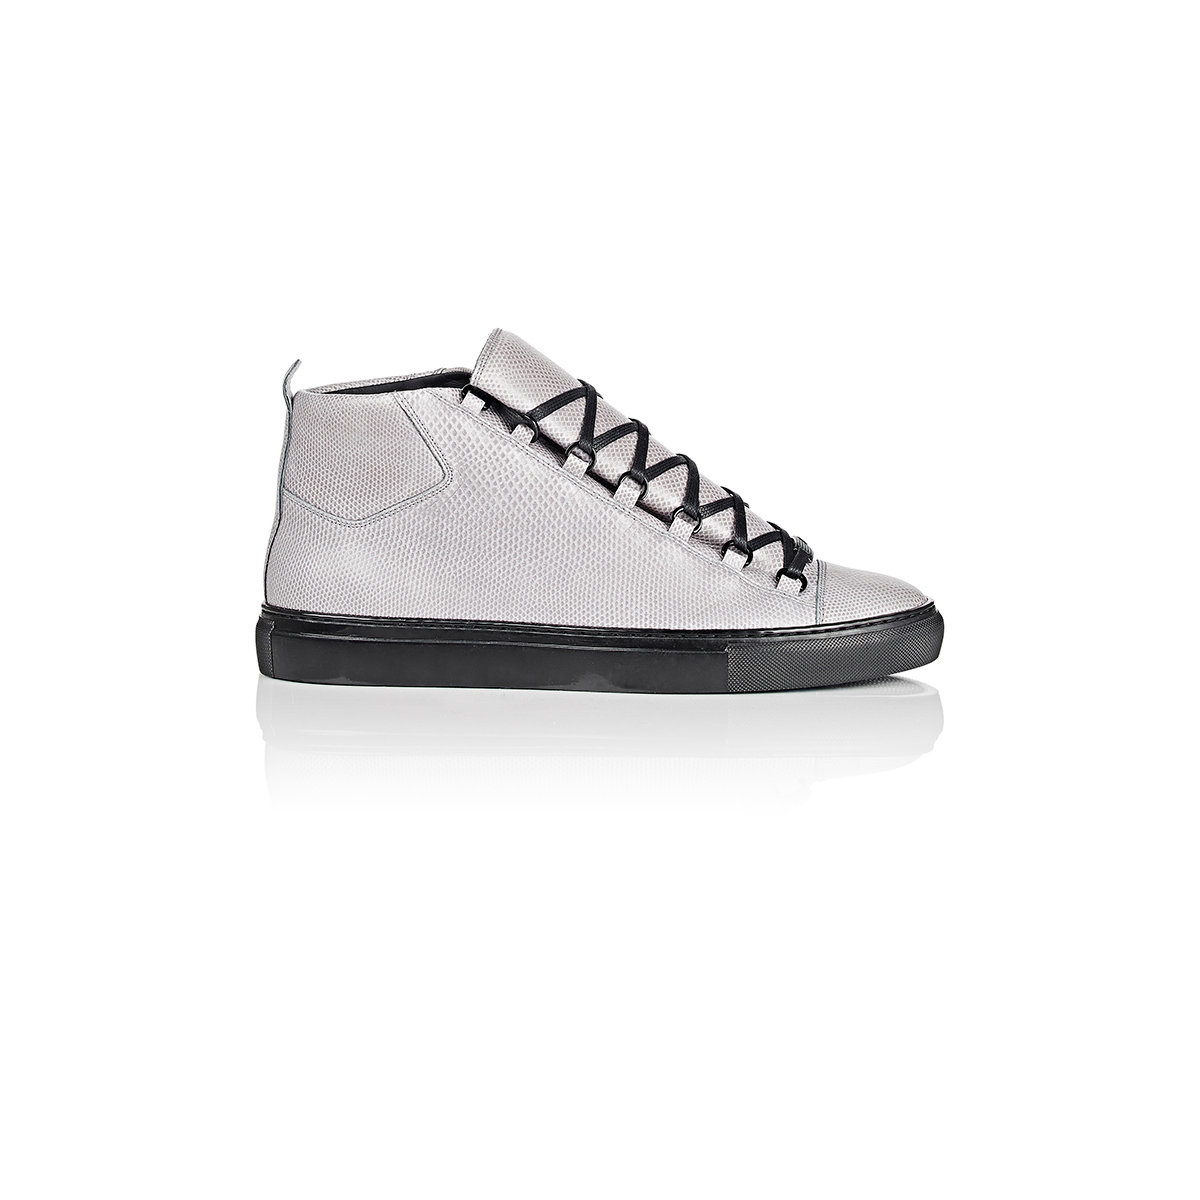 02d31f03ca322 Lyst - Balenciaga Snakeskin Arena High-top Sneakers in Gray for Men